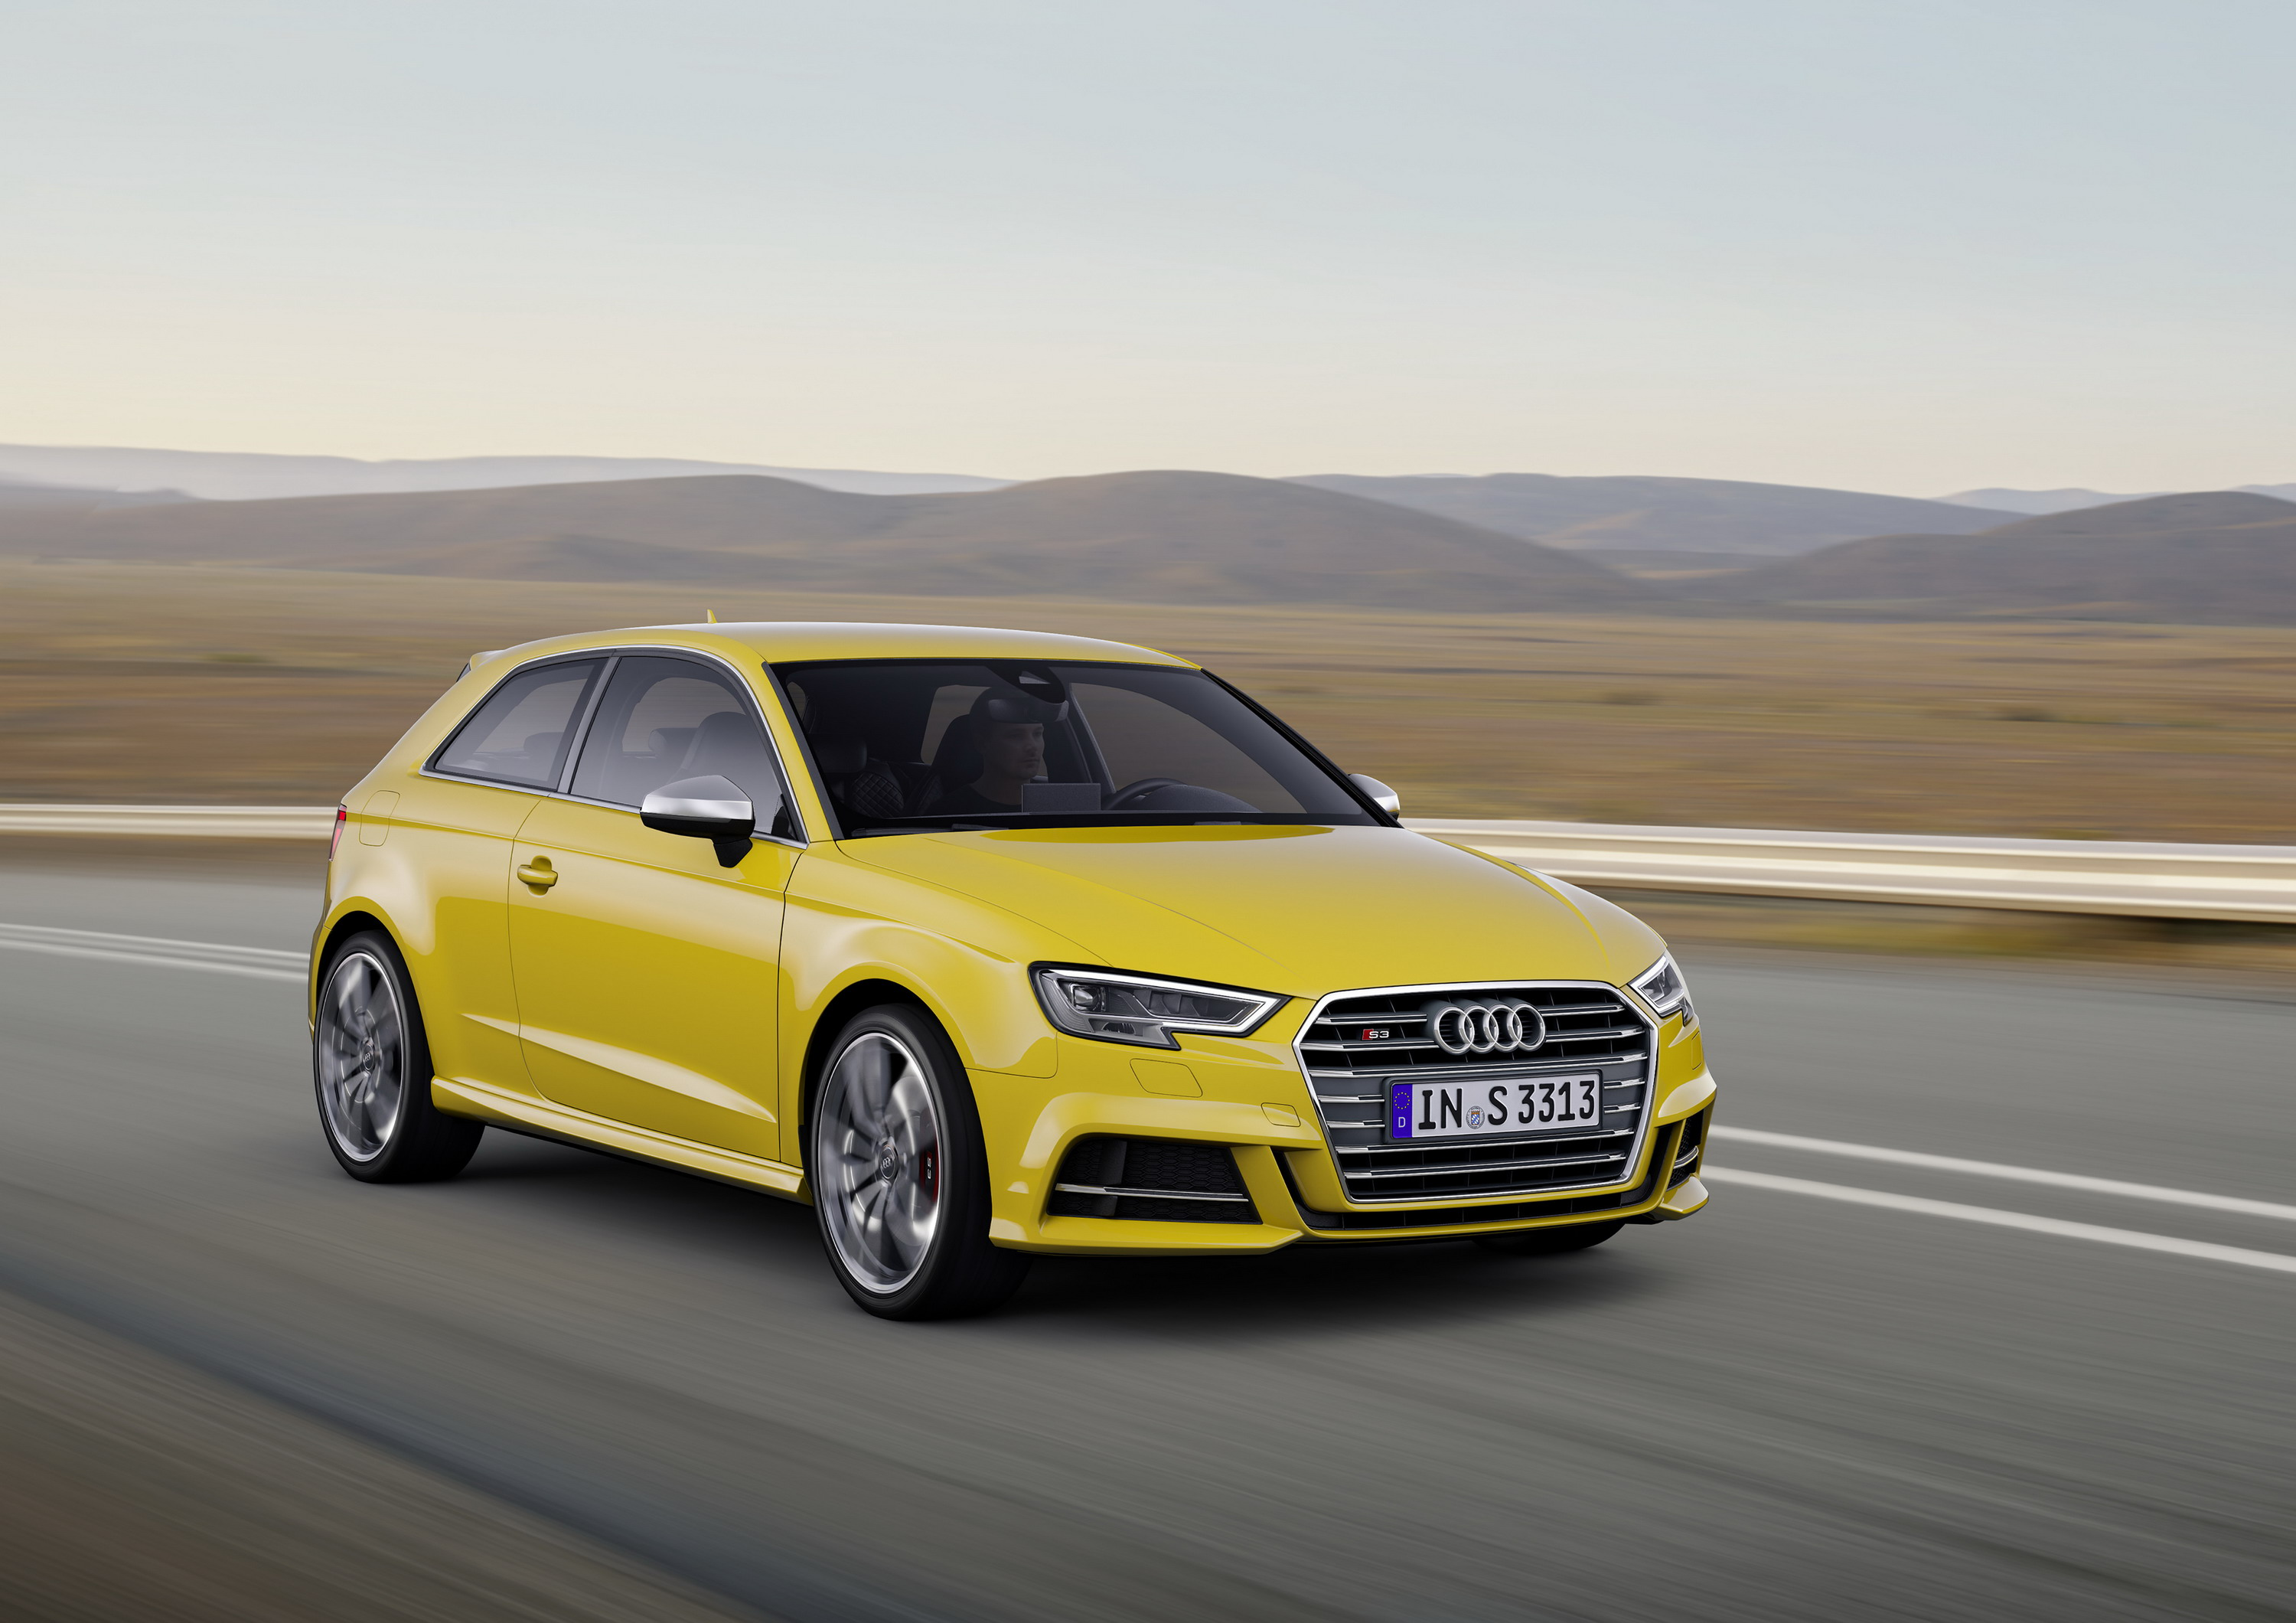 2017 Audi S3 Top Speed If The Toggle Switch Is Changed To Manual Mode Operation